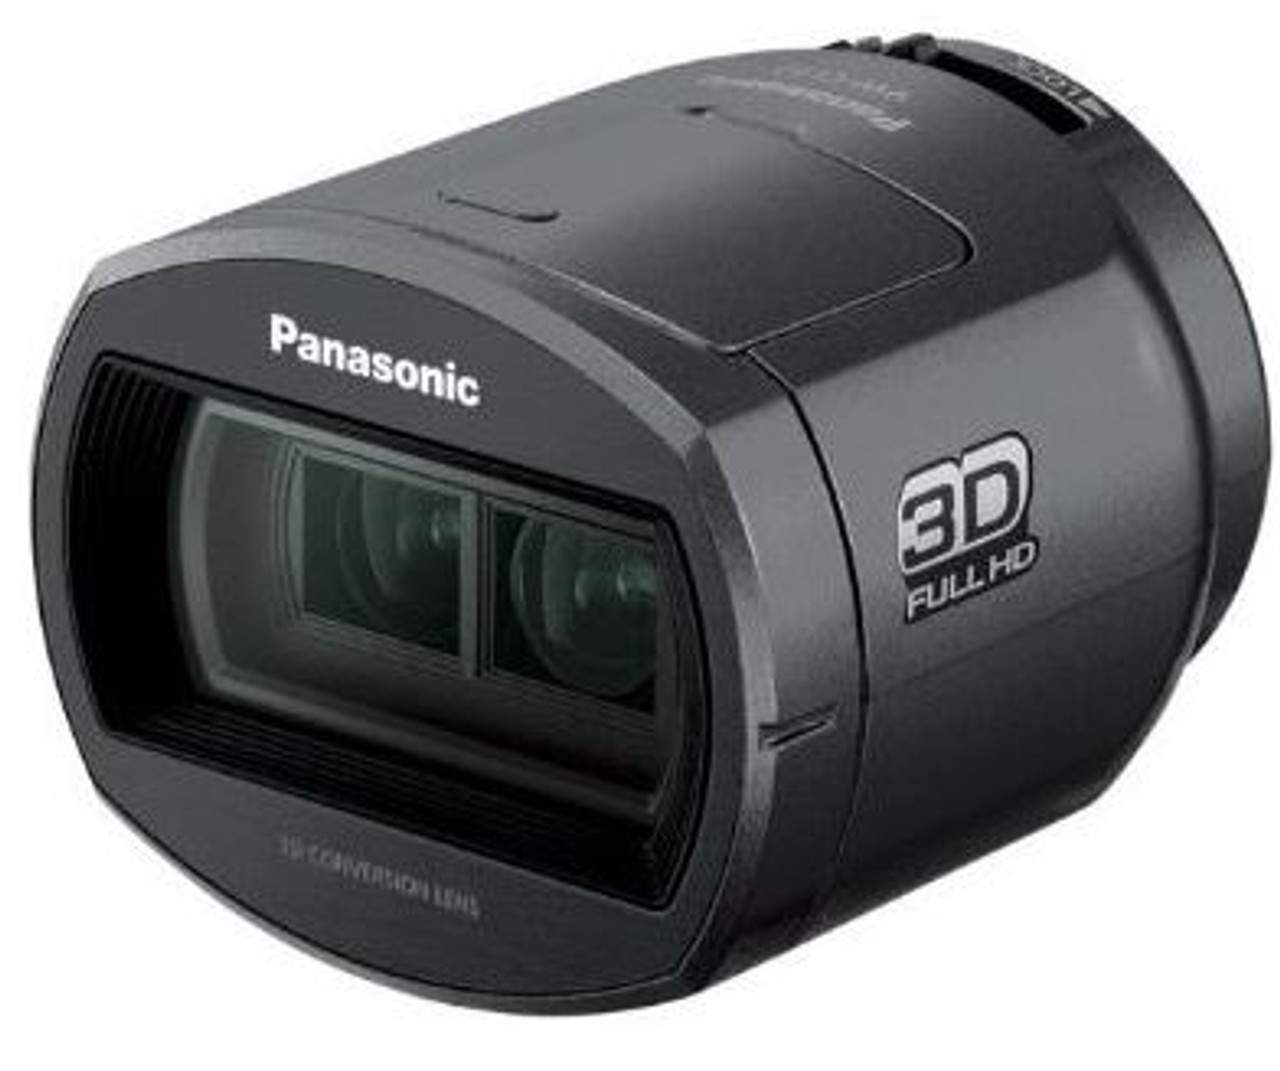 Panasonic VW-CLT2 3D Conversion Lens for Camcorder